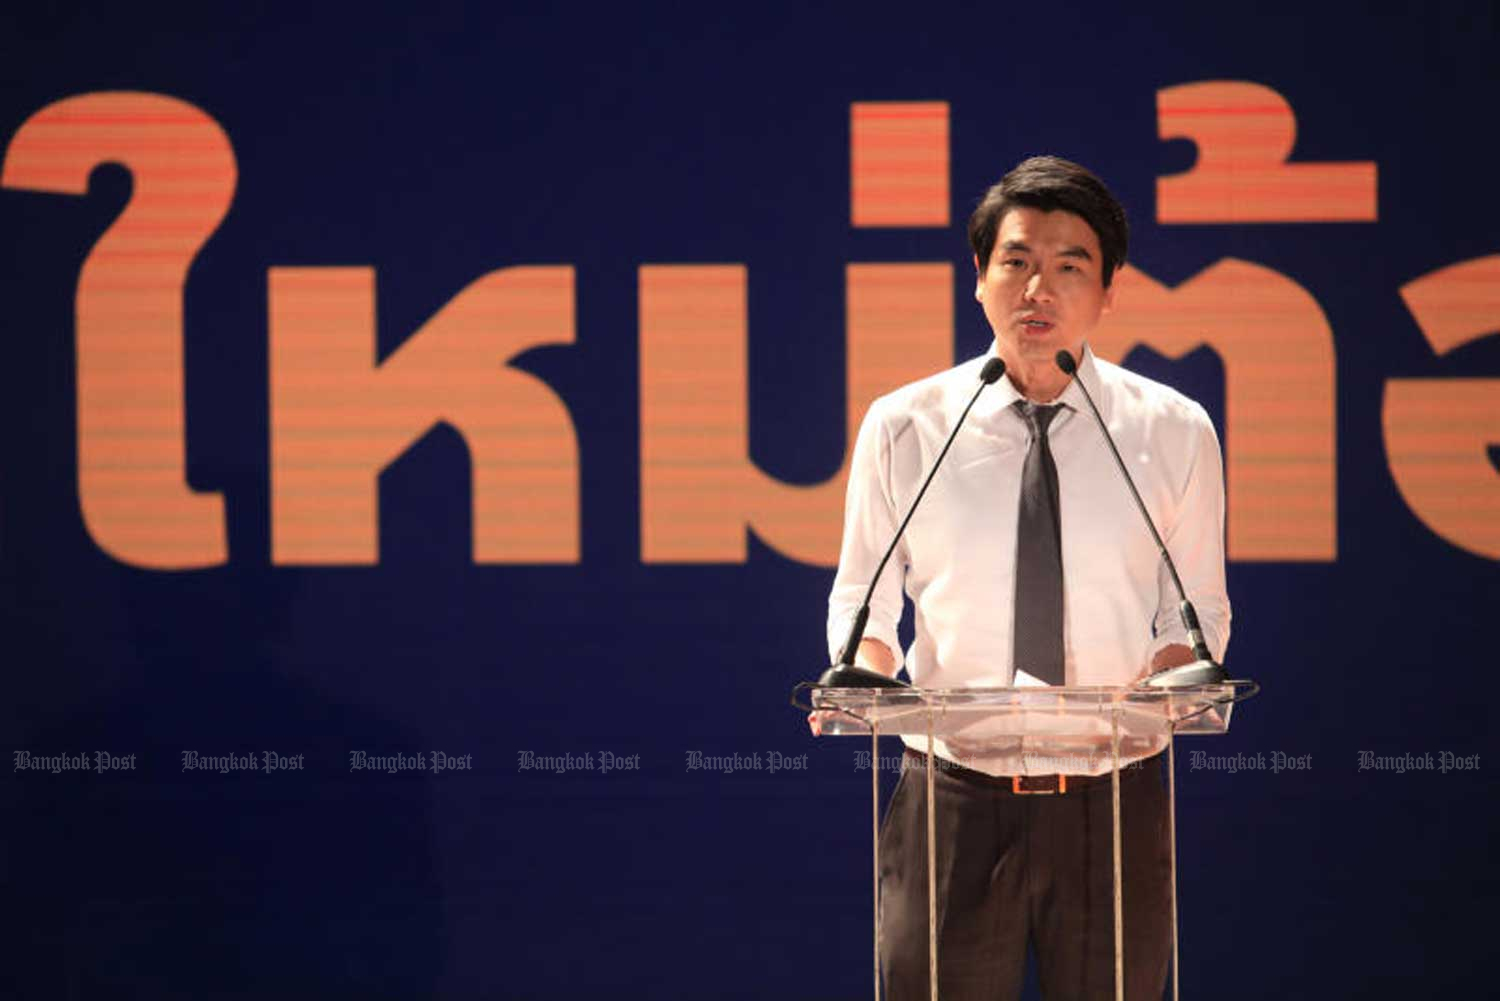 Future Forward Party secretary-general Piyabutr Saengkanokkul